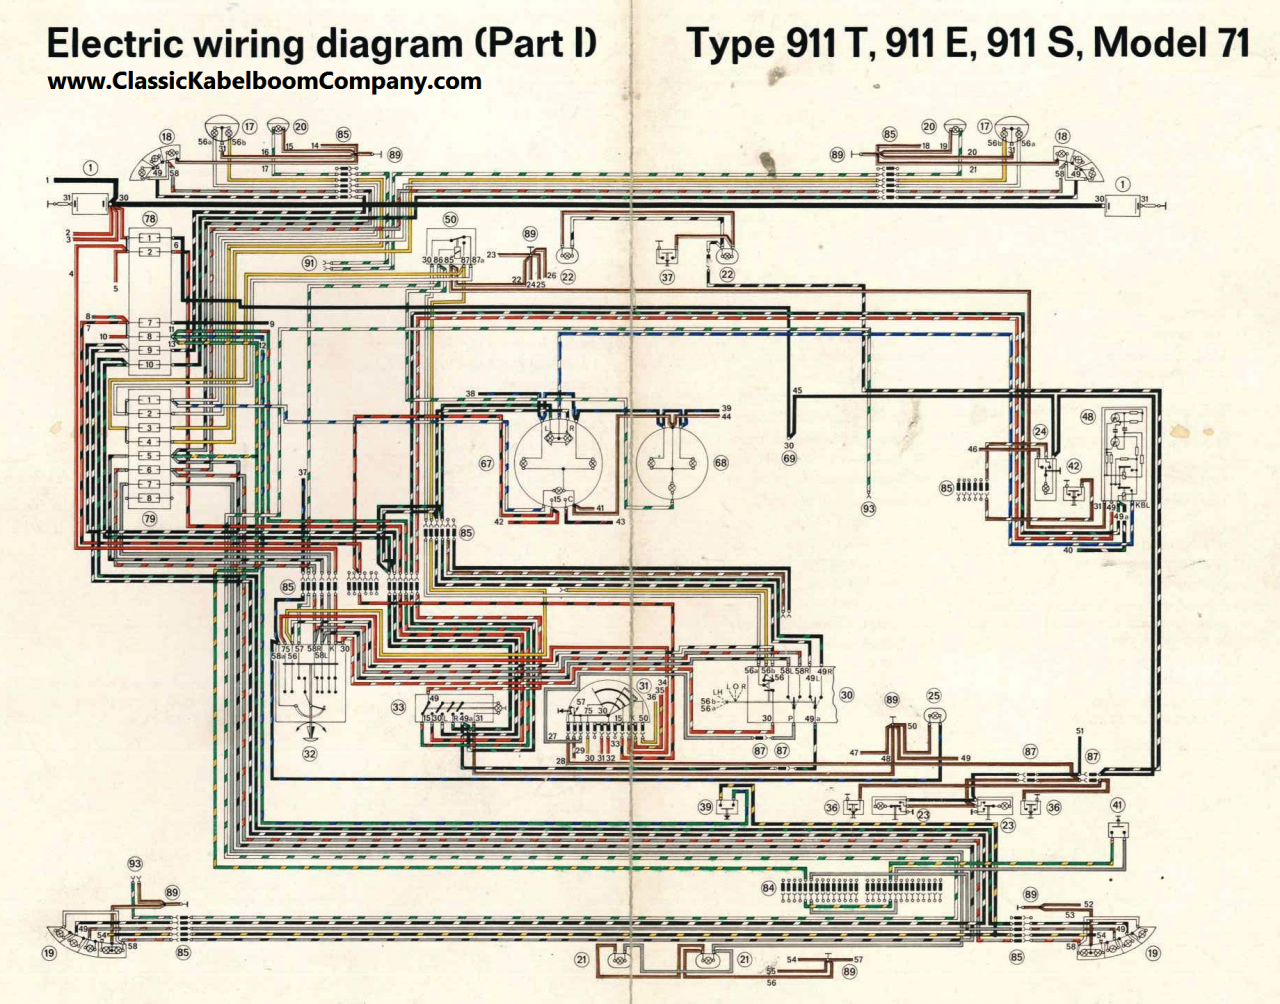 Porsche 911 Wiring Diagram Porsche 911 Wiring Diagram - Wiring Diagrams